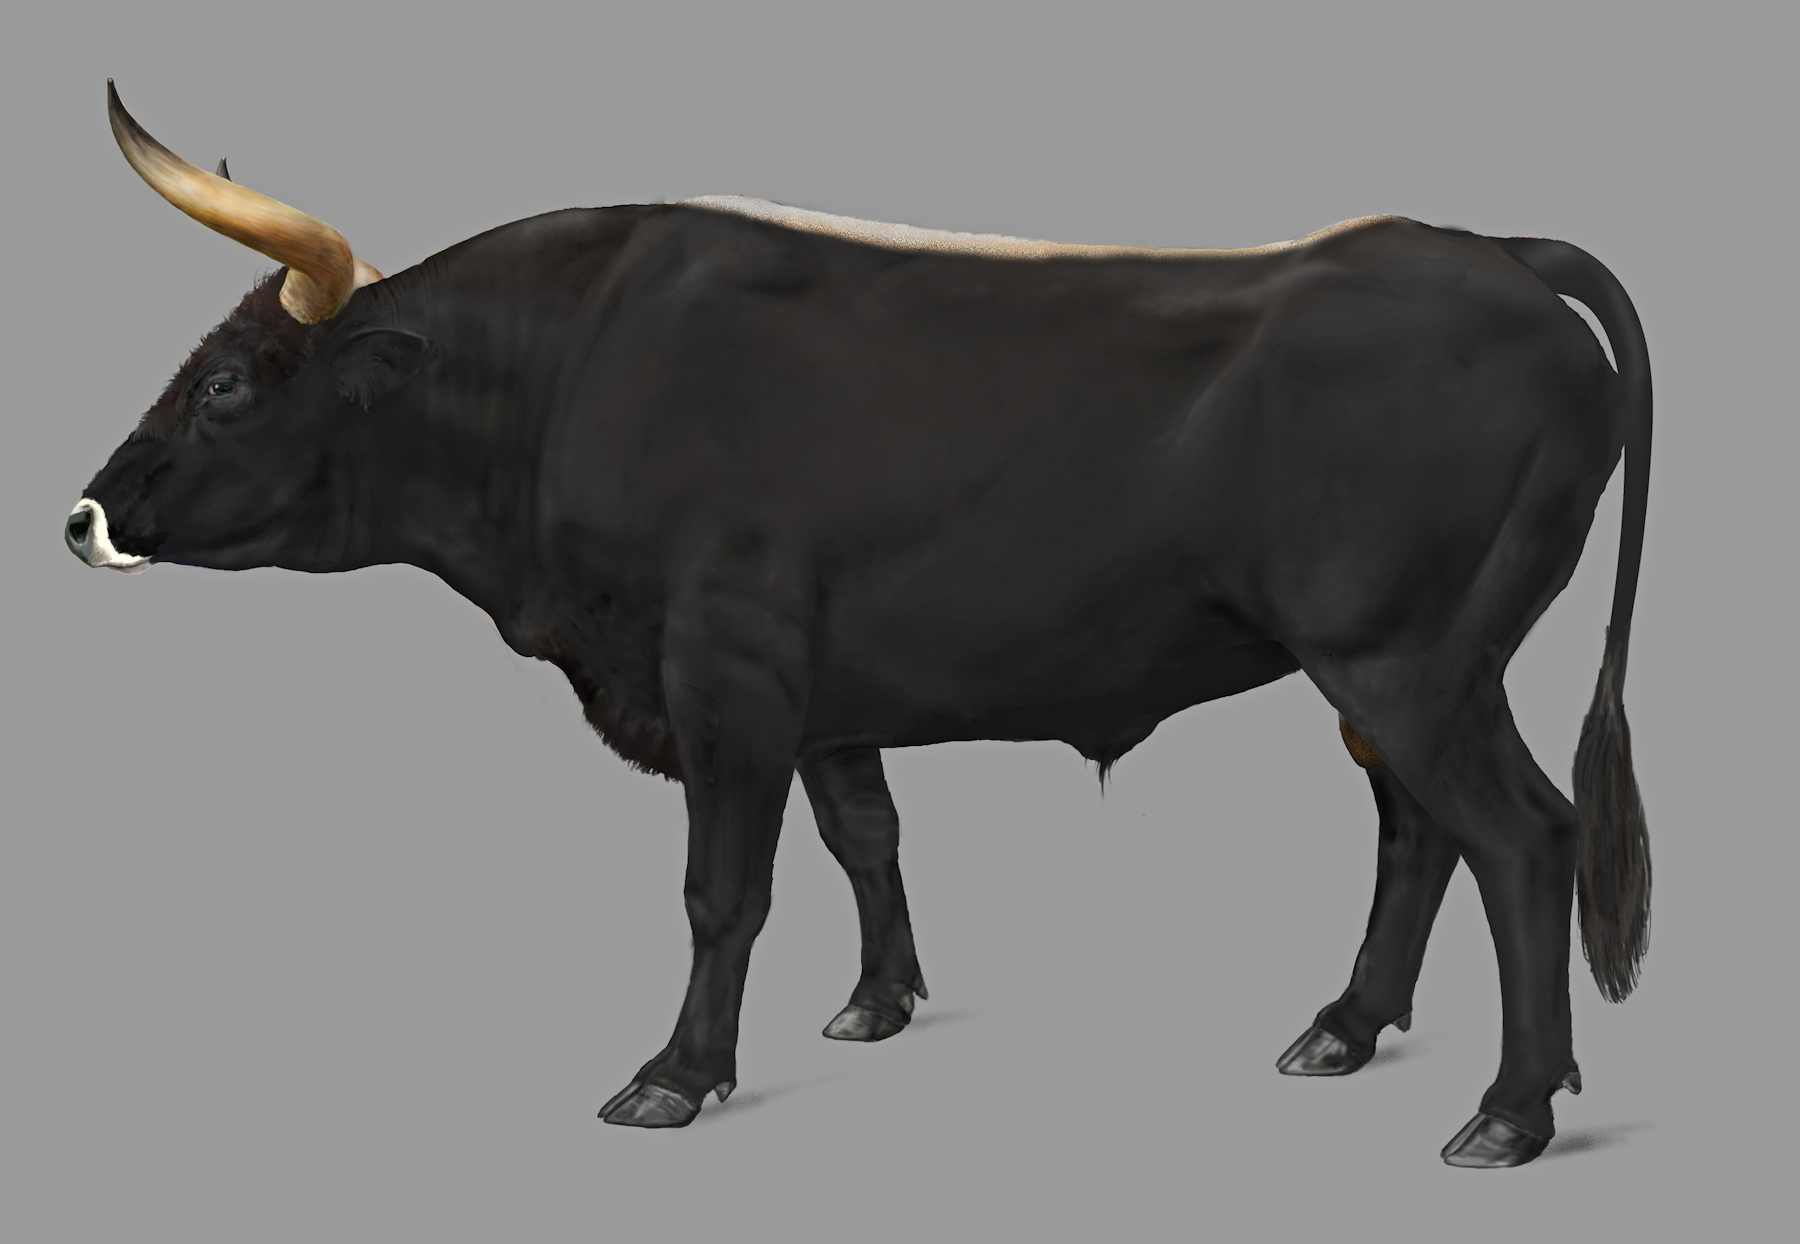 True Nature Foundation starts international project to bring back the aurochs